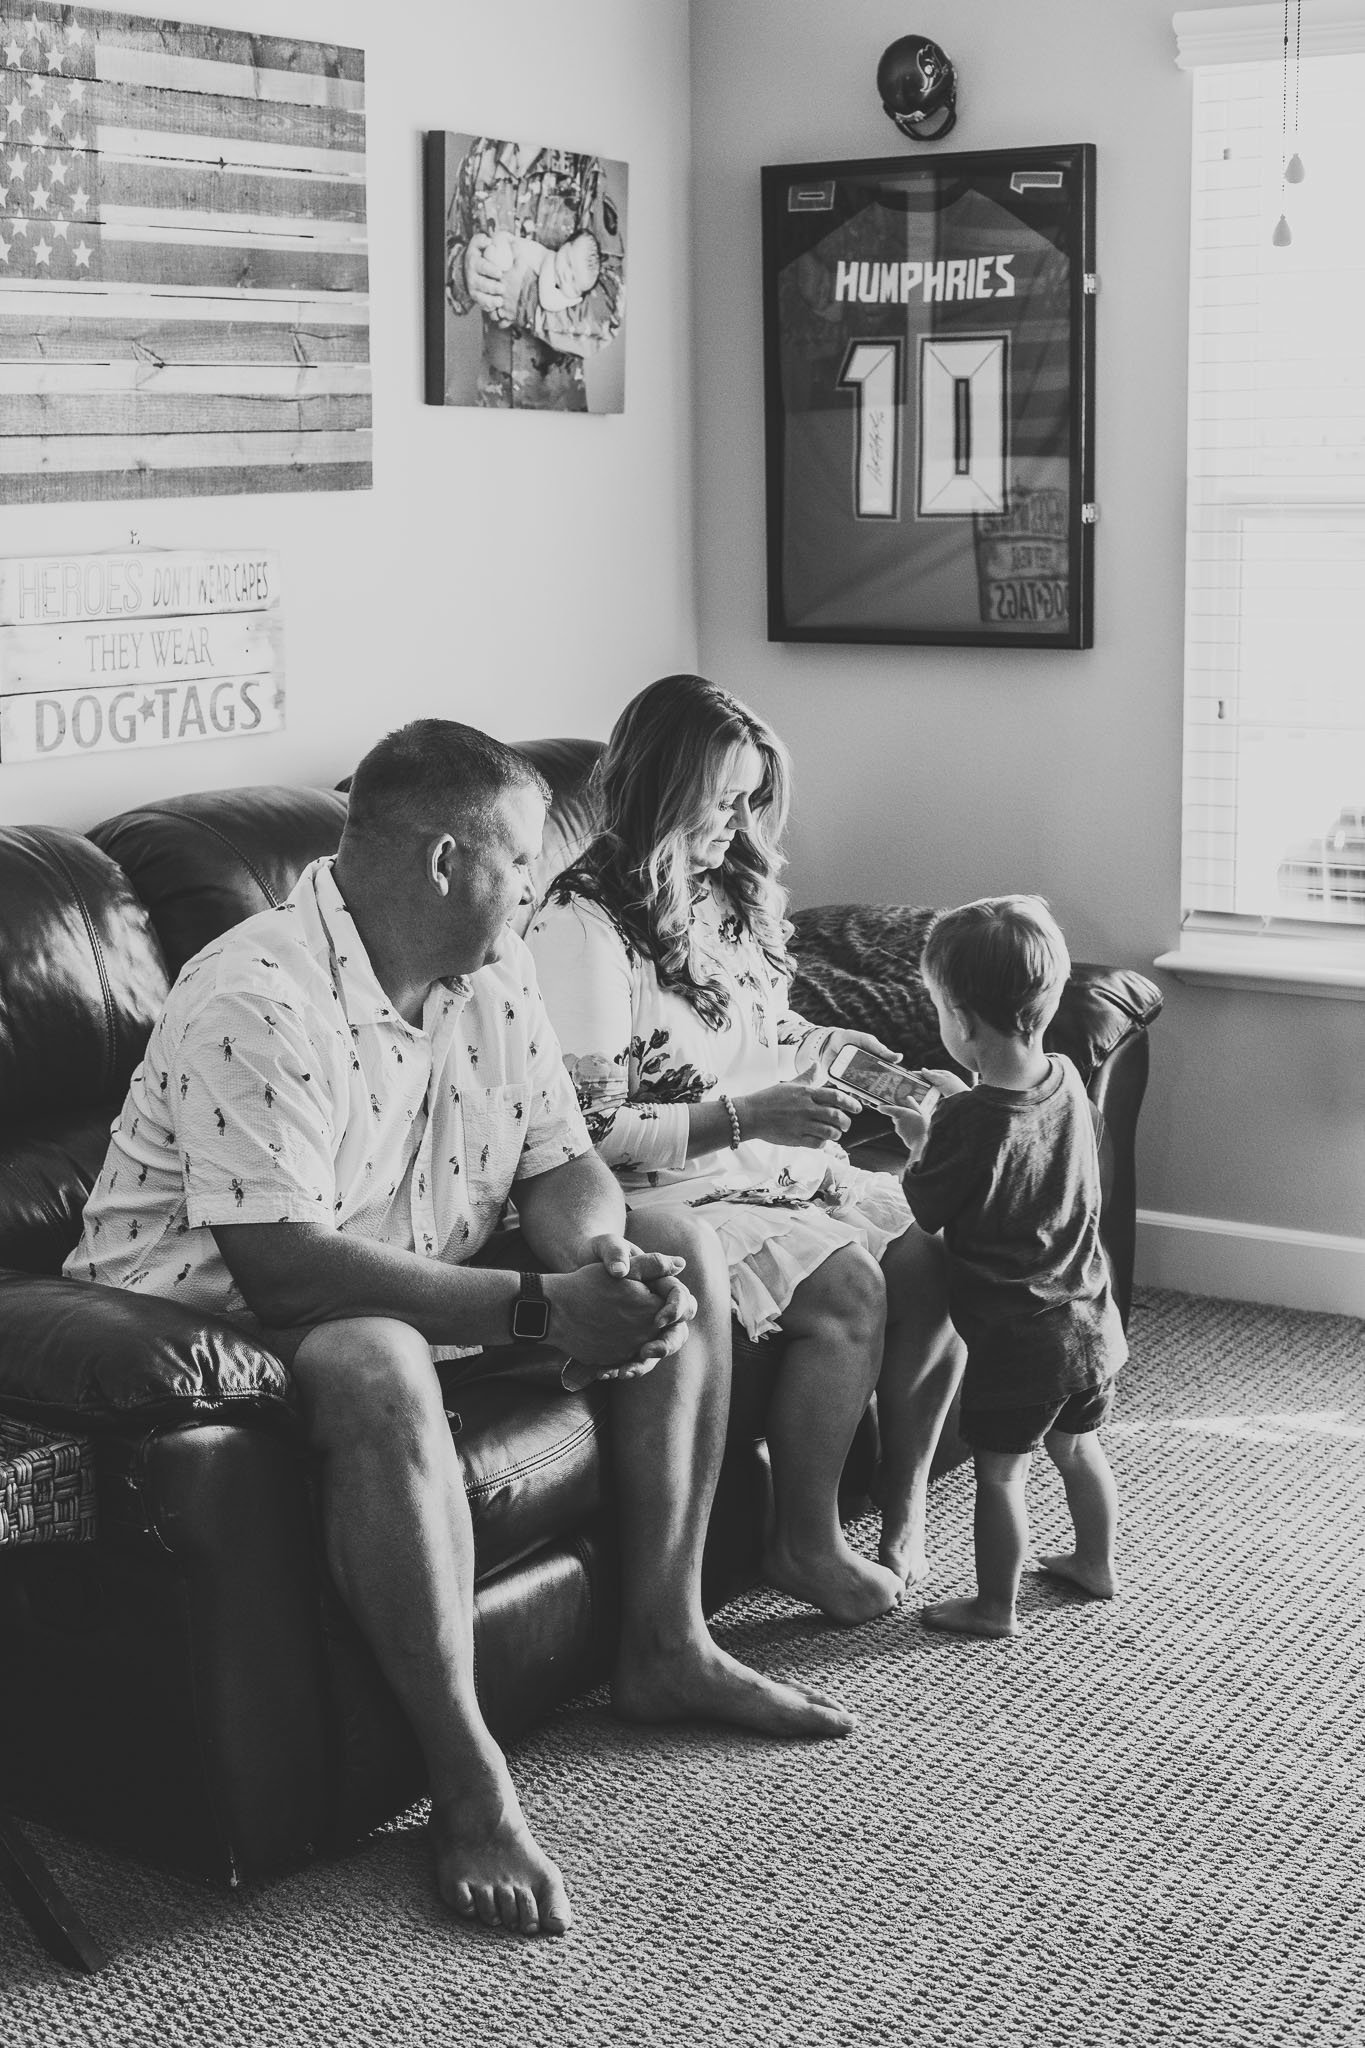 Oahu, Hawaii Lifestyle Photographer - Lifestyle Photography - Brooke Flanagan Photography - Family shot at home in black and white